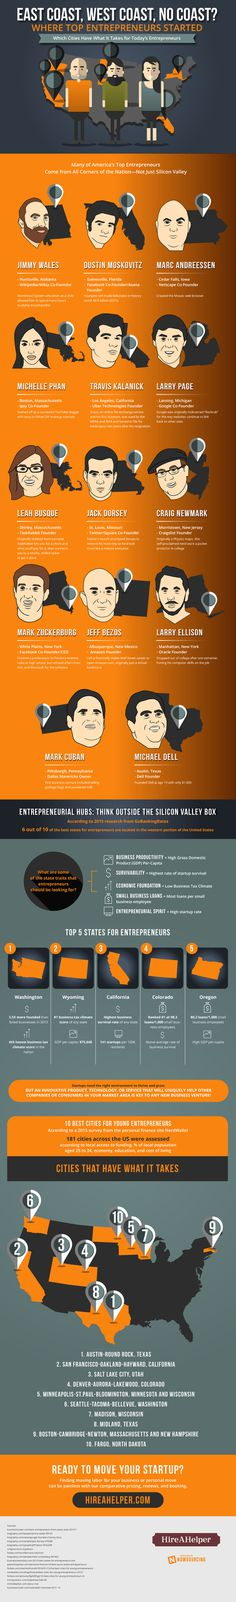 Where do #entrepreneurs come from? You might be surprised!